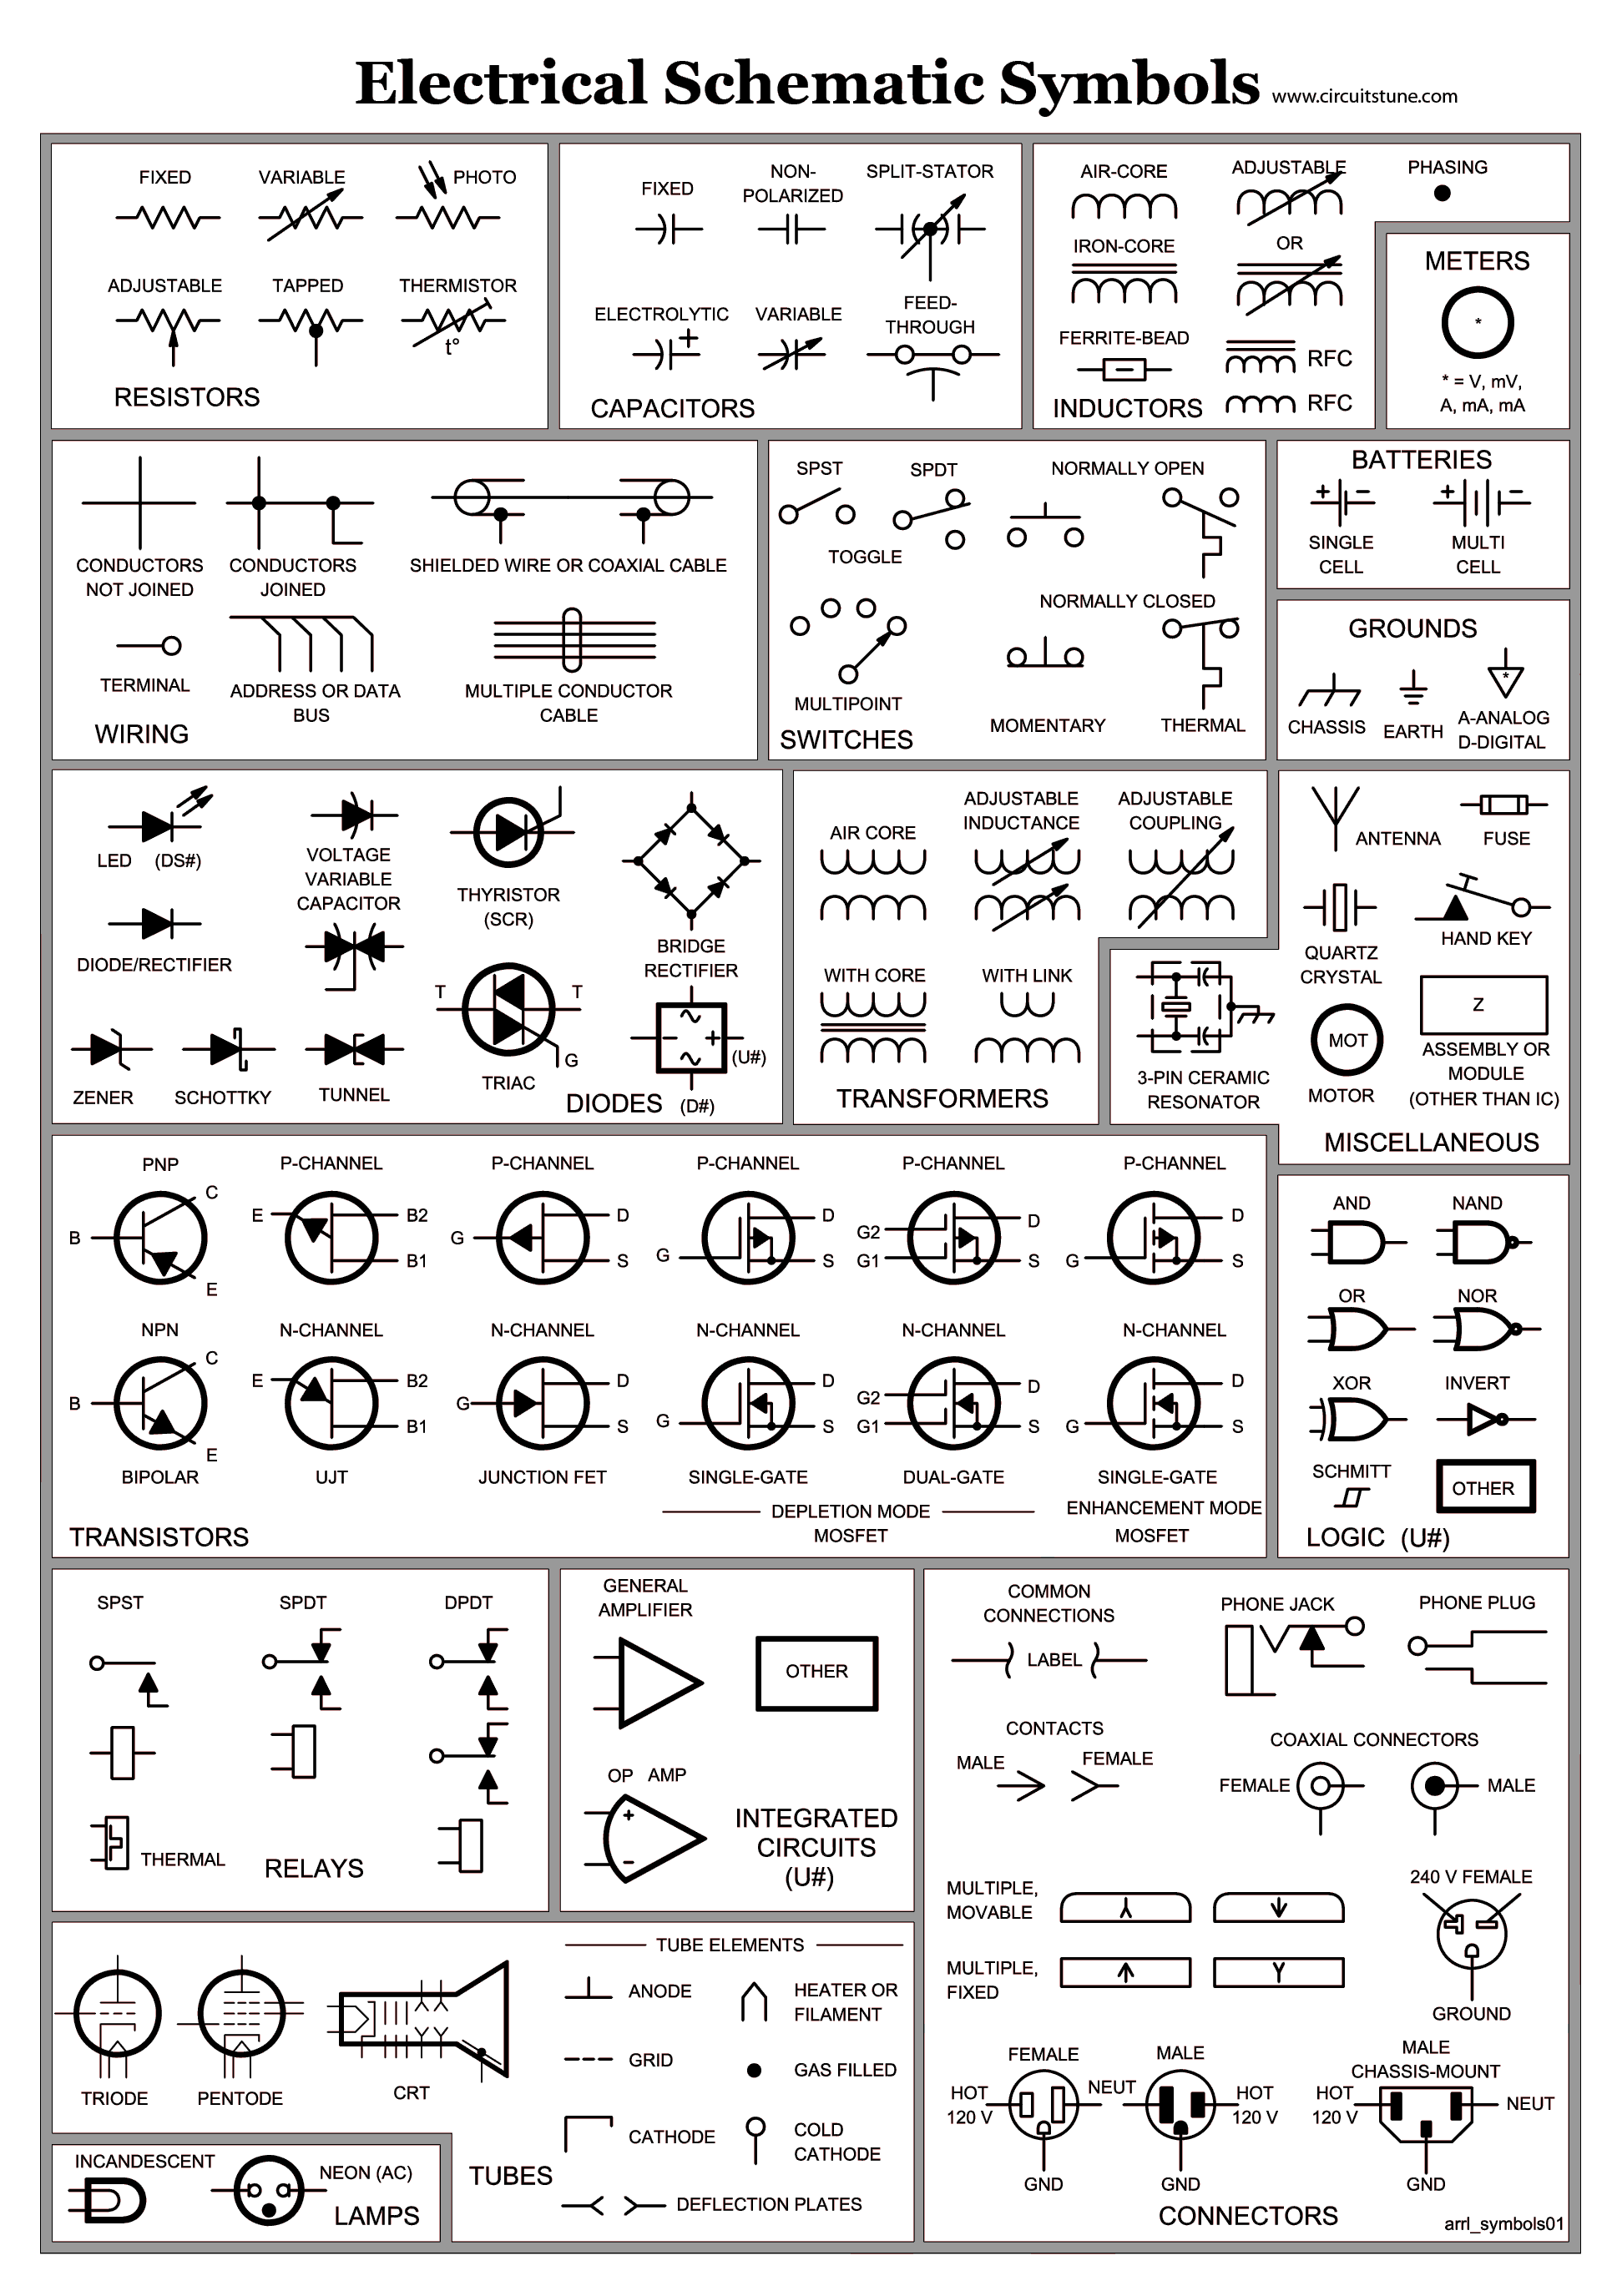 a65d176364692d2ebe913b58a654cfc3 electrical schematic symbols wire diagram symbols automotive electronic wiring diagram symbols at alyssarenee.co